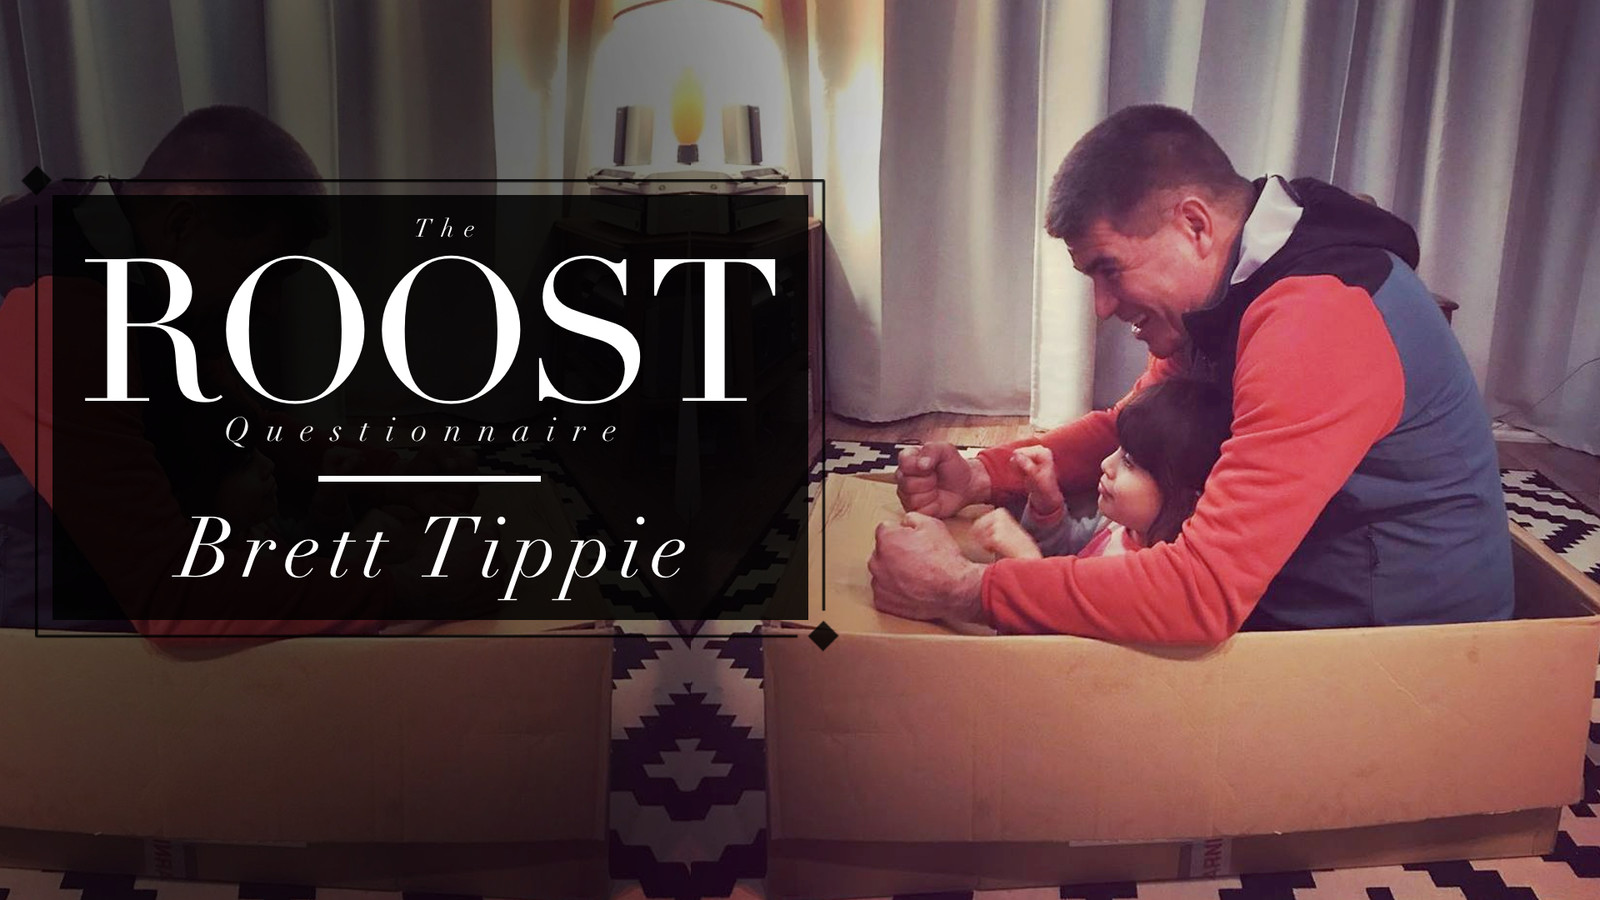 The ROOST Questionnaire #5, Brett Tippie